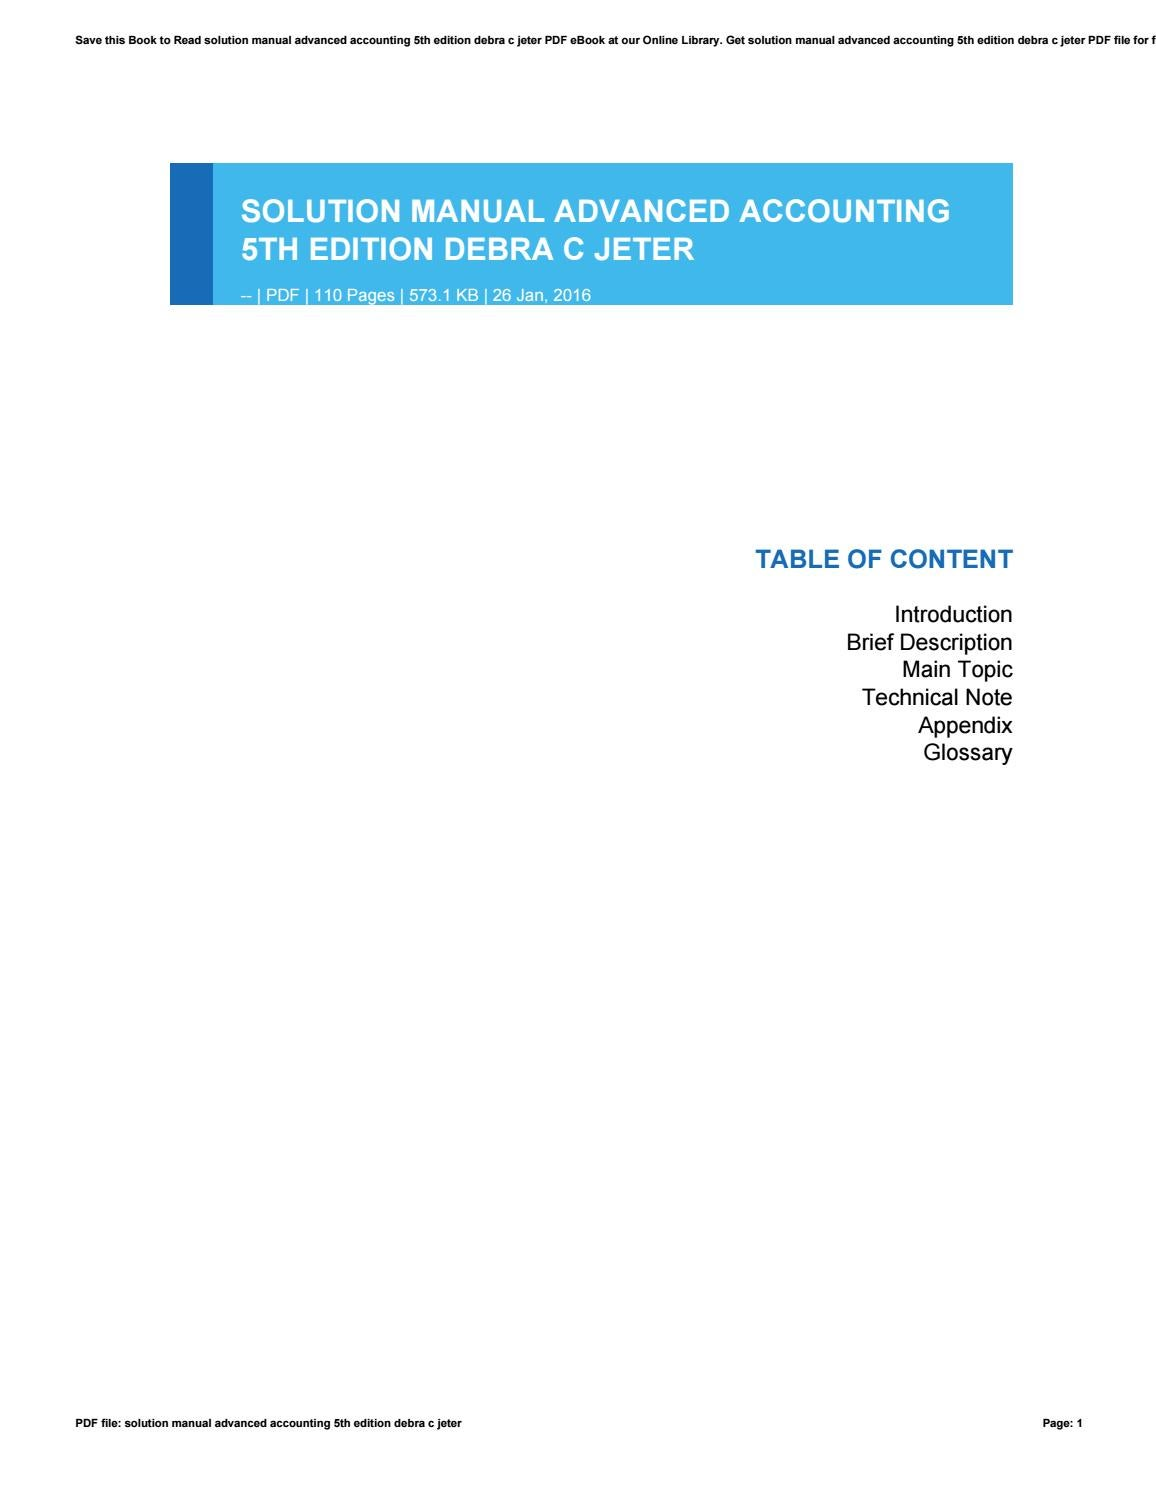 Solution Manual Advanced Accounting 5th Edition Debra C Jeter By Asm96 Issuu